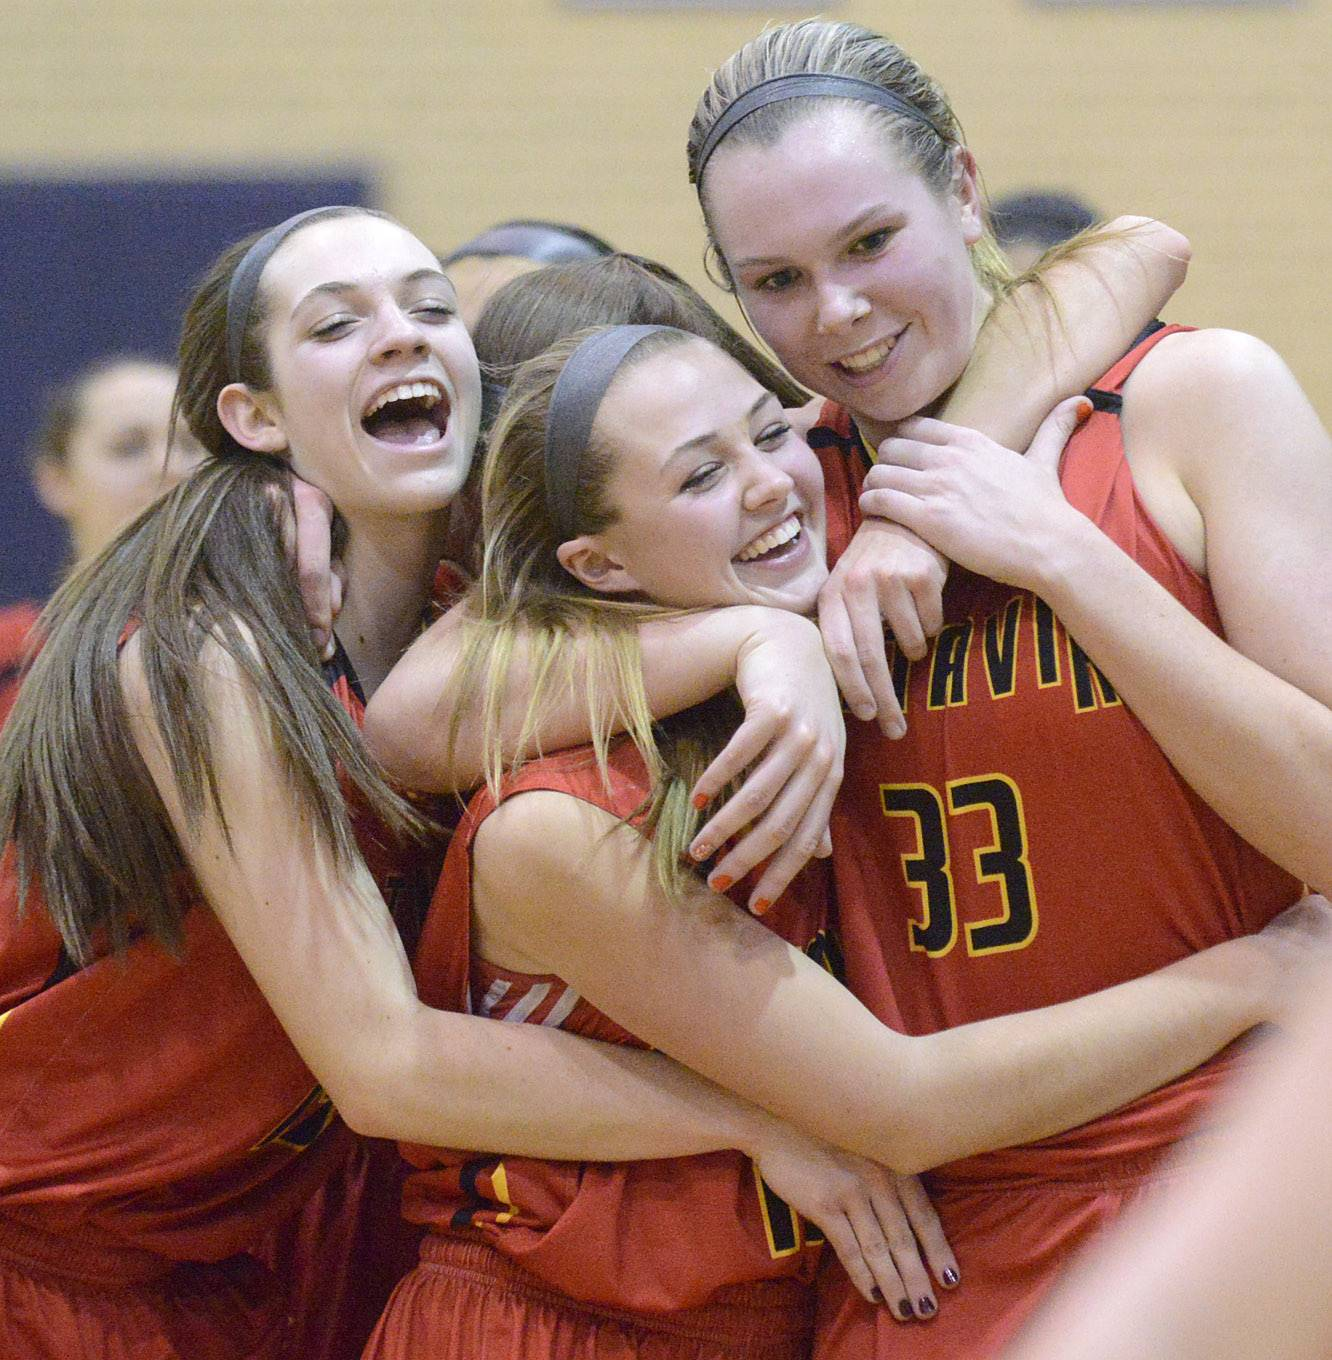 Laura Stoecker/lstoecker@dailyherald.comBatavia's Mackenzie Foster, left, Katie Weber, center, and Erin Bayram, right, embrace as they walk off the court after their 4A sectional semifinal win over Downers Grove North at Addison Trail High School in Addison on Tuesday, February 25.